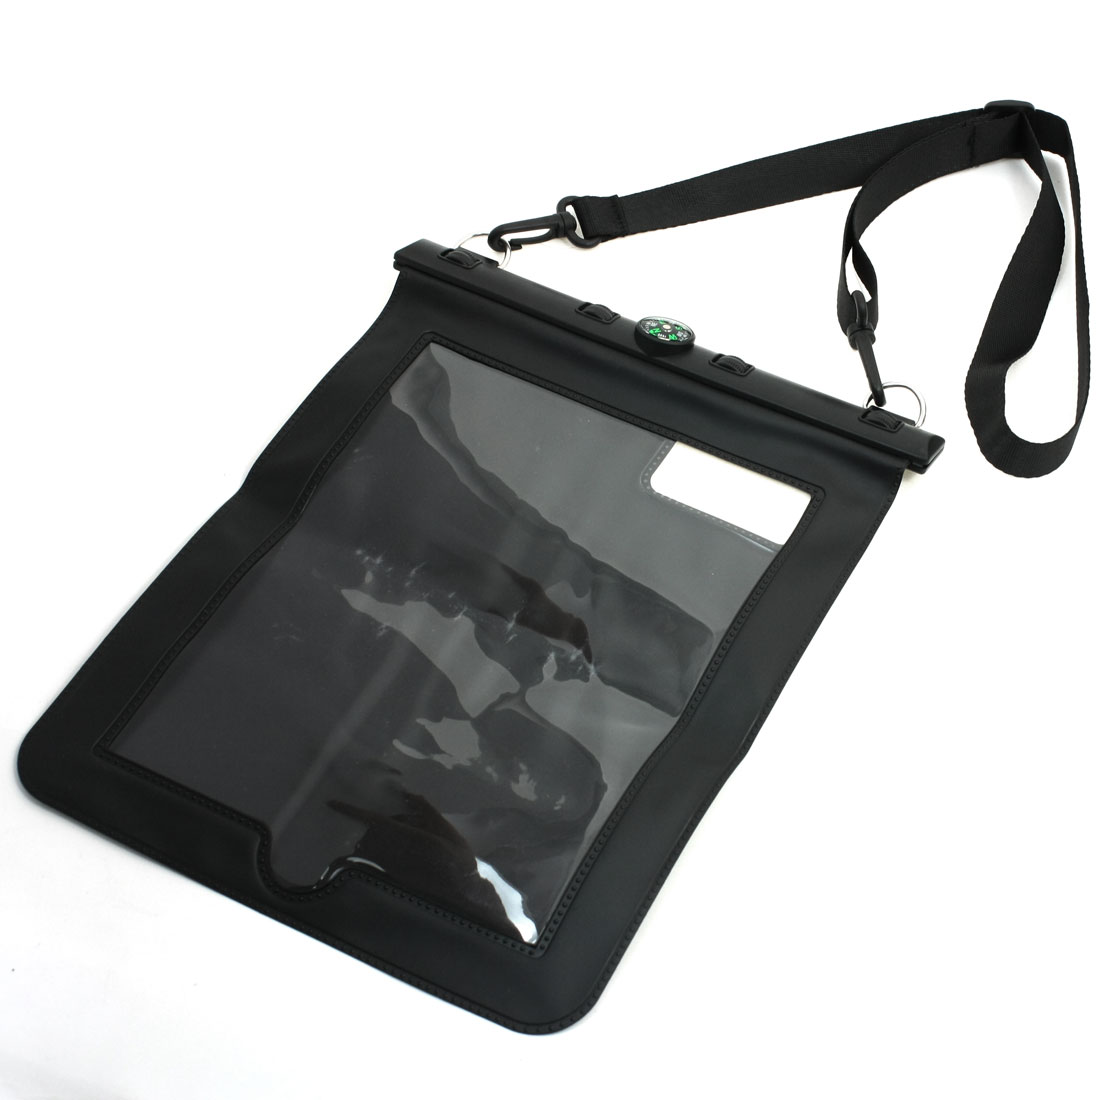 Compass Water Proof Protector Case Cover Black w Neck Strap for iPad 2 3 4